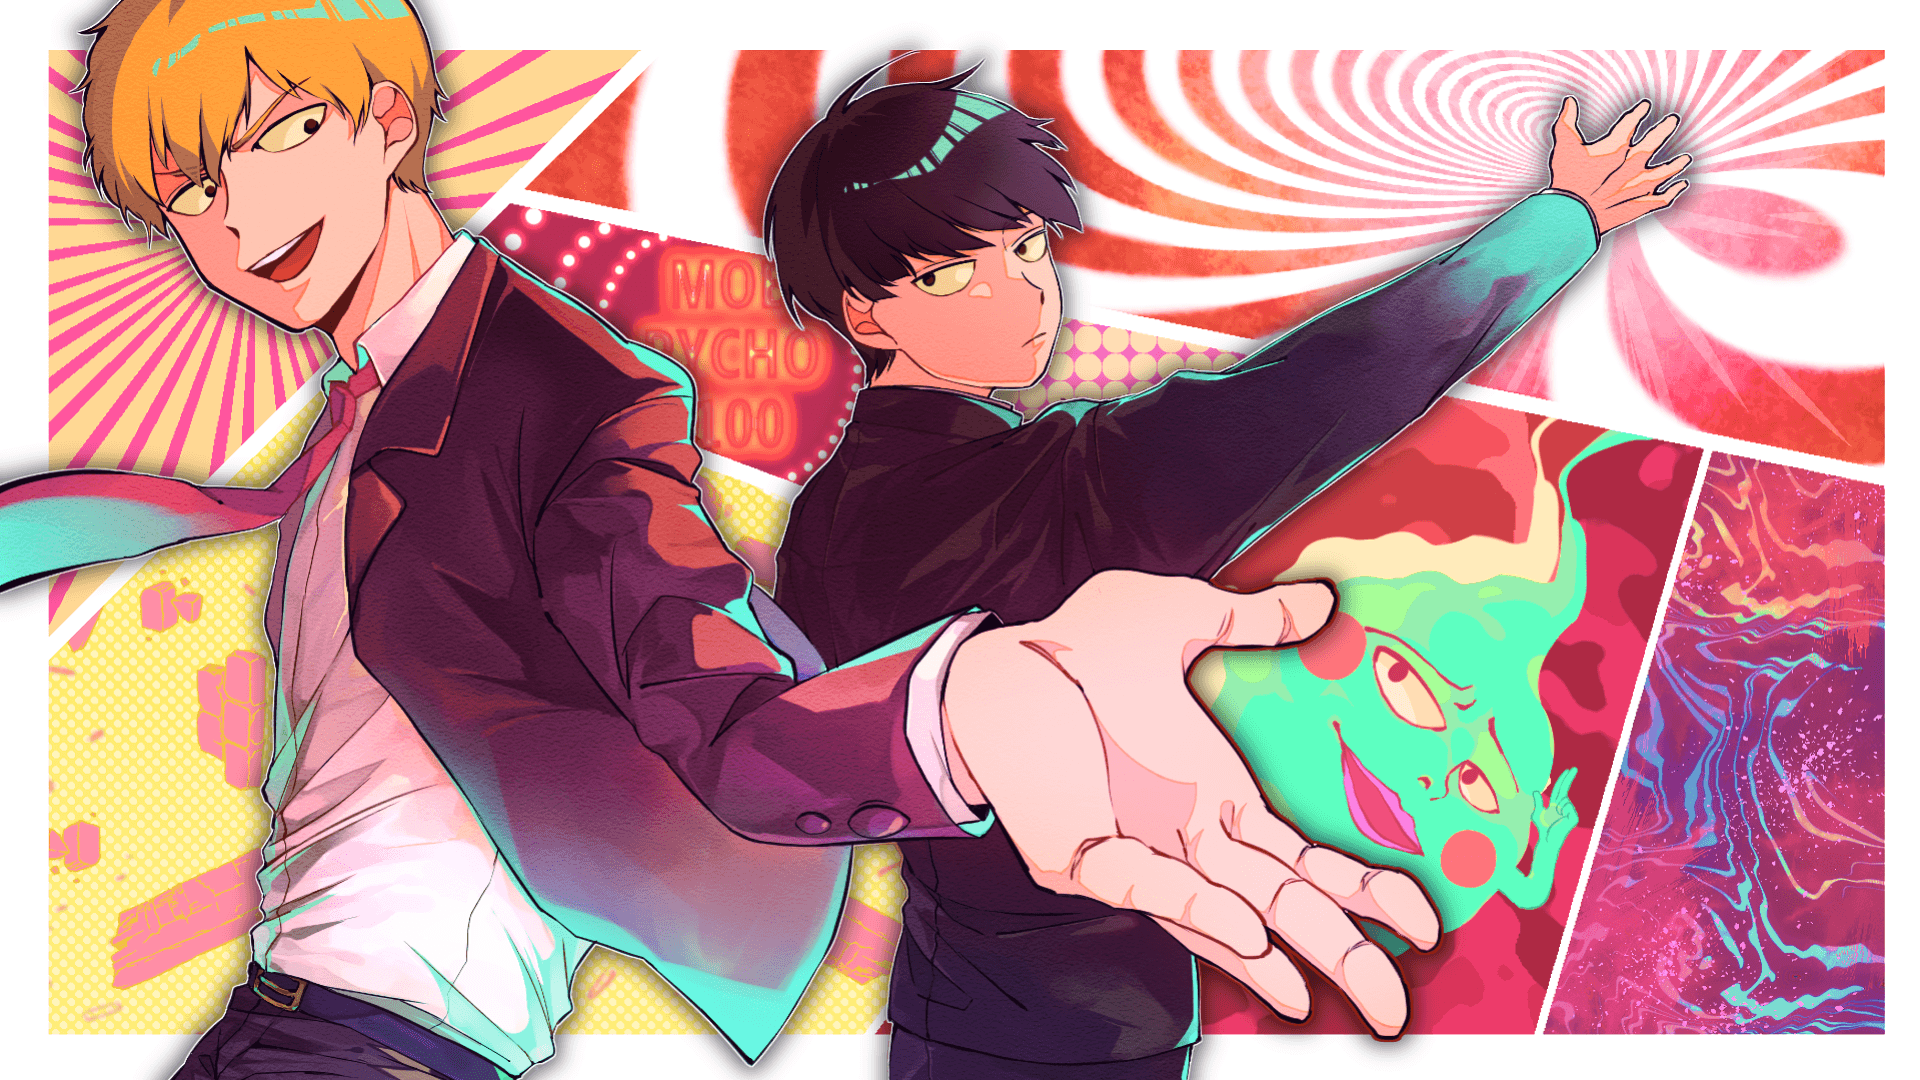 Arataka Reigen, Mob Psycho 100, Shigeo Kageyama HD Wallpapers